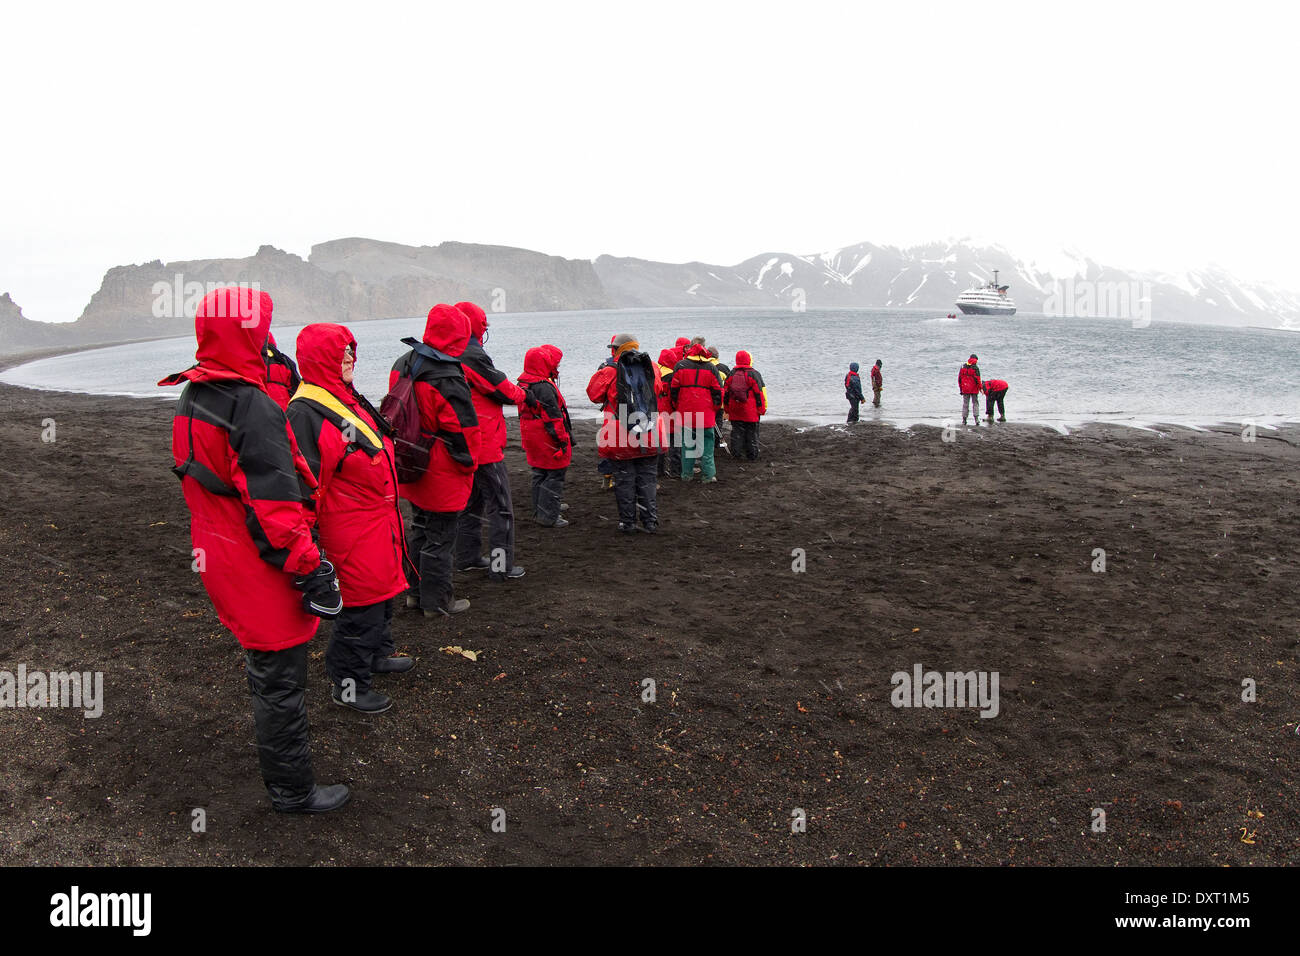 Antarctica cruise ship passengers leaving Whalers Bay, Deception Island by Zodiac. Antarctic tourism. South Shetland Islands. - Stock Image